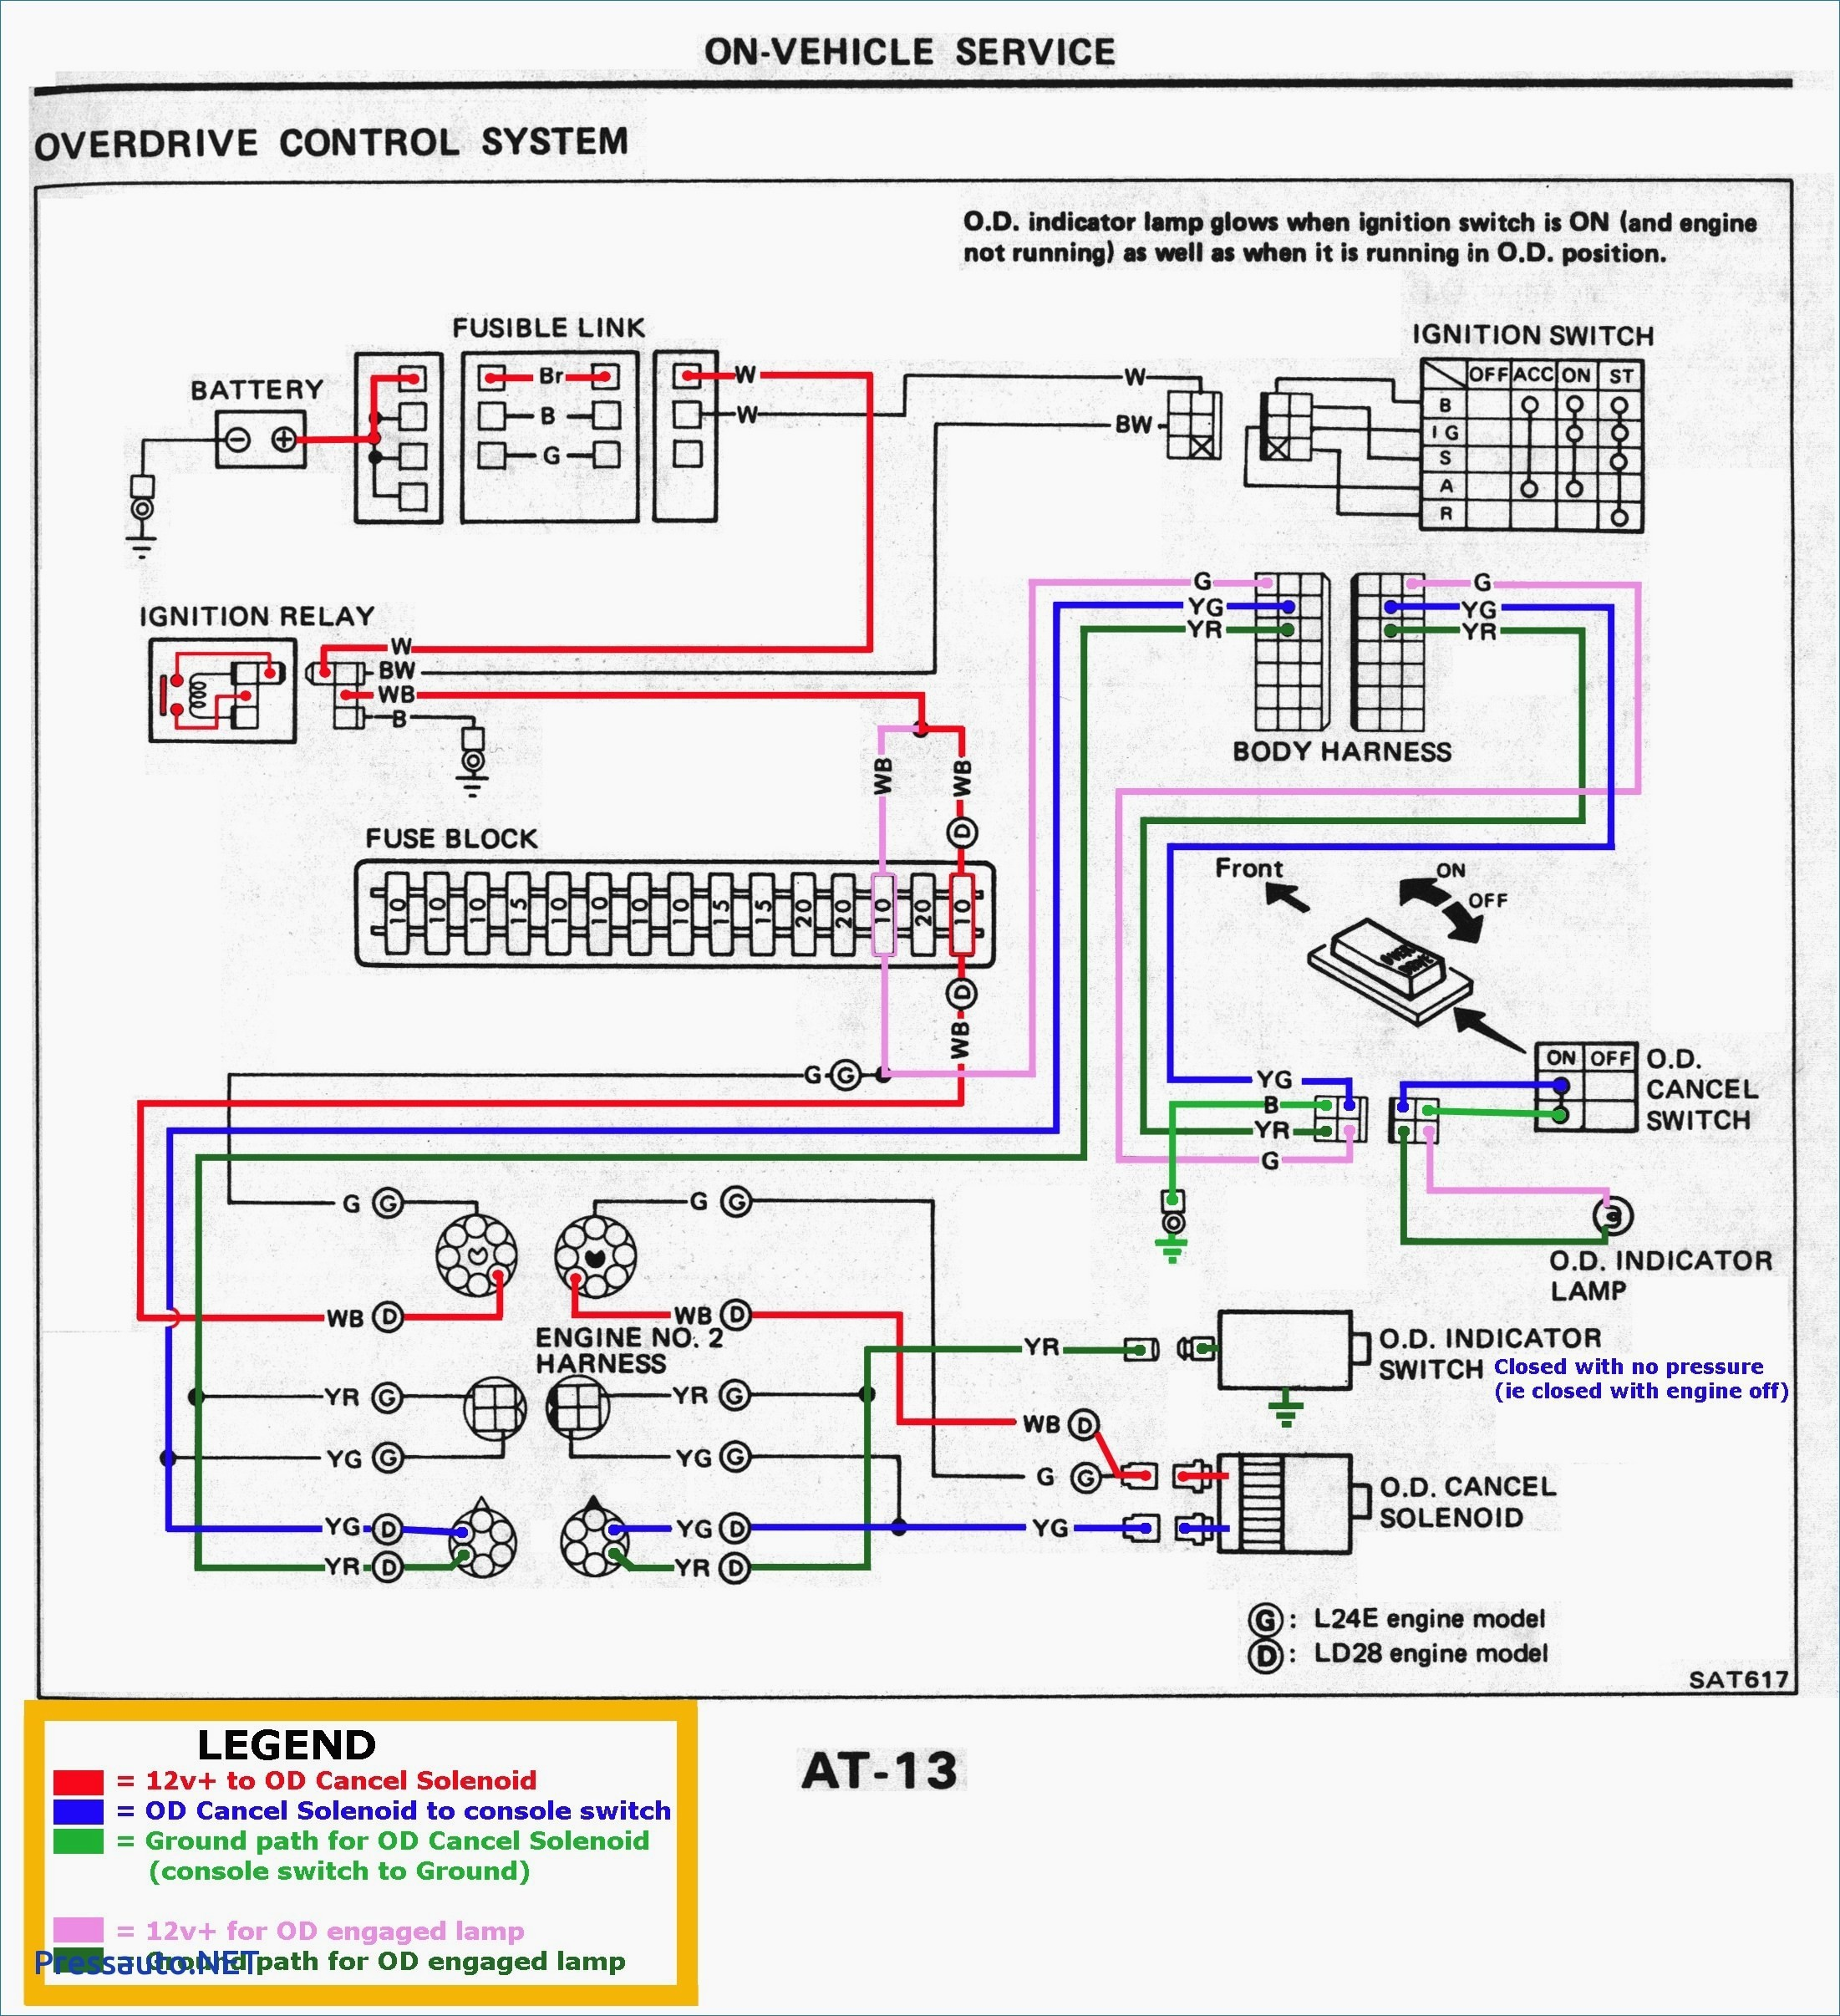 94 Lexus Alternator Wiring Another Blog About Diagram 1996 Ls400 1994 Toyota Pickup Rh Detoxicrecenze Com